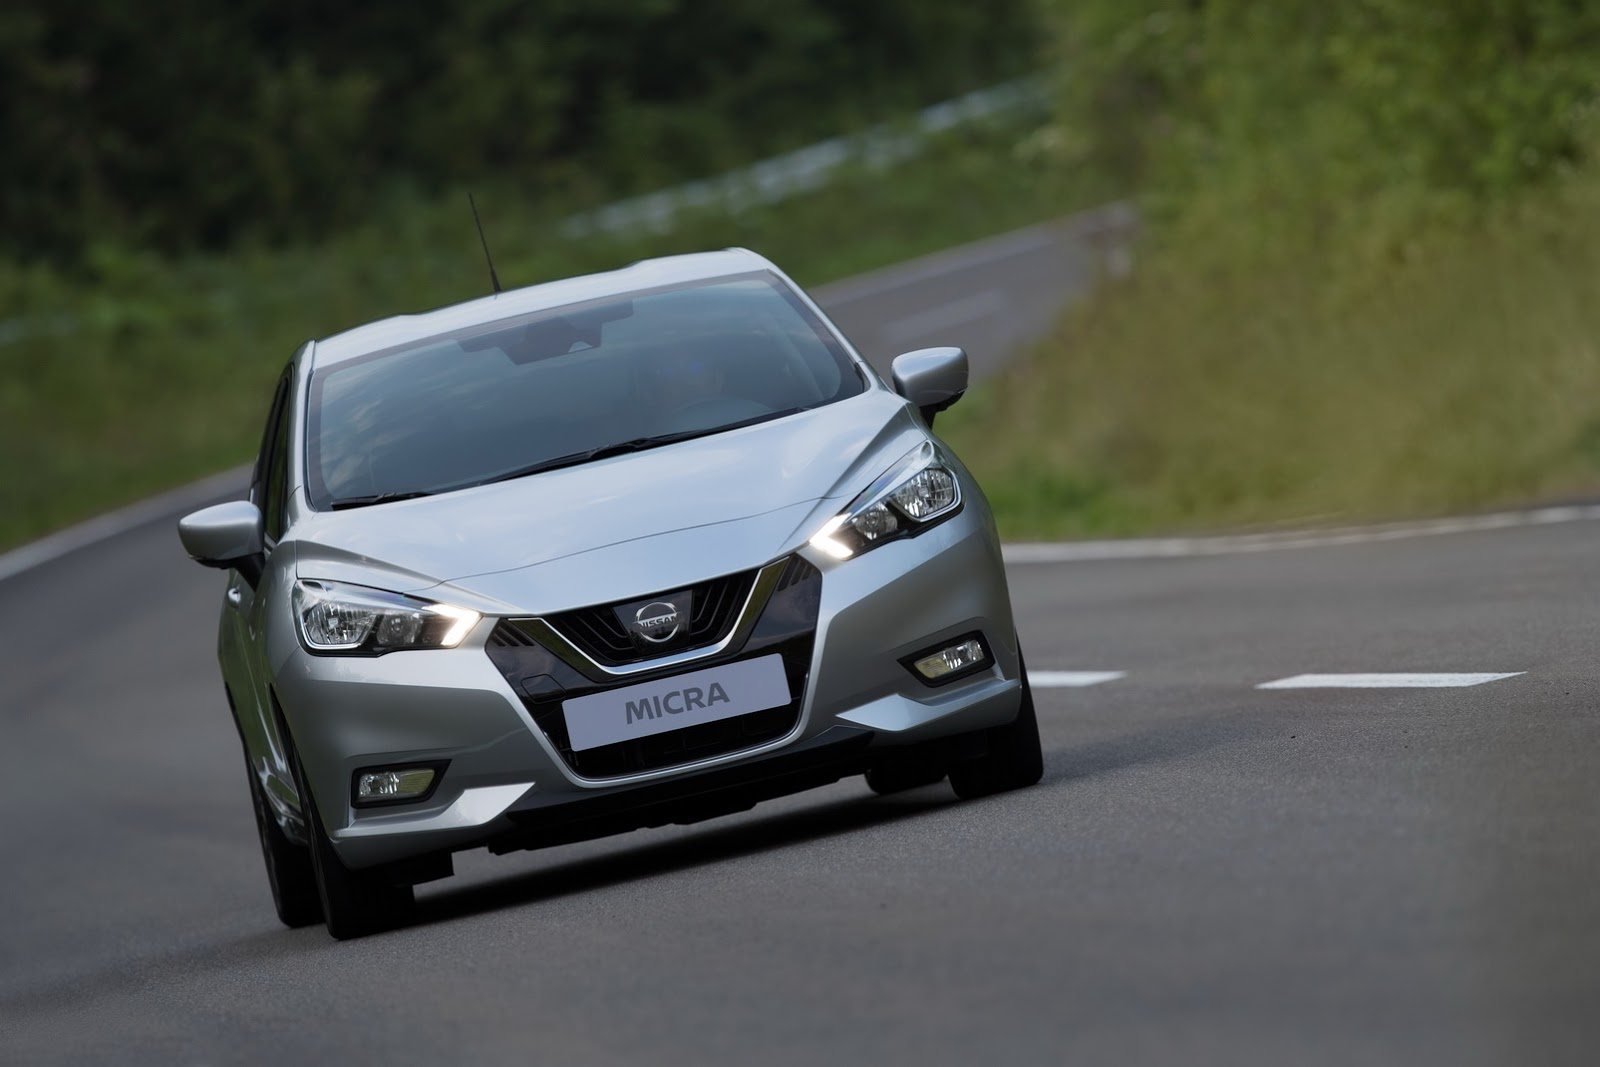 2018 Nissan Micra Nismo Looks Hot, But Will It Receive the ...